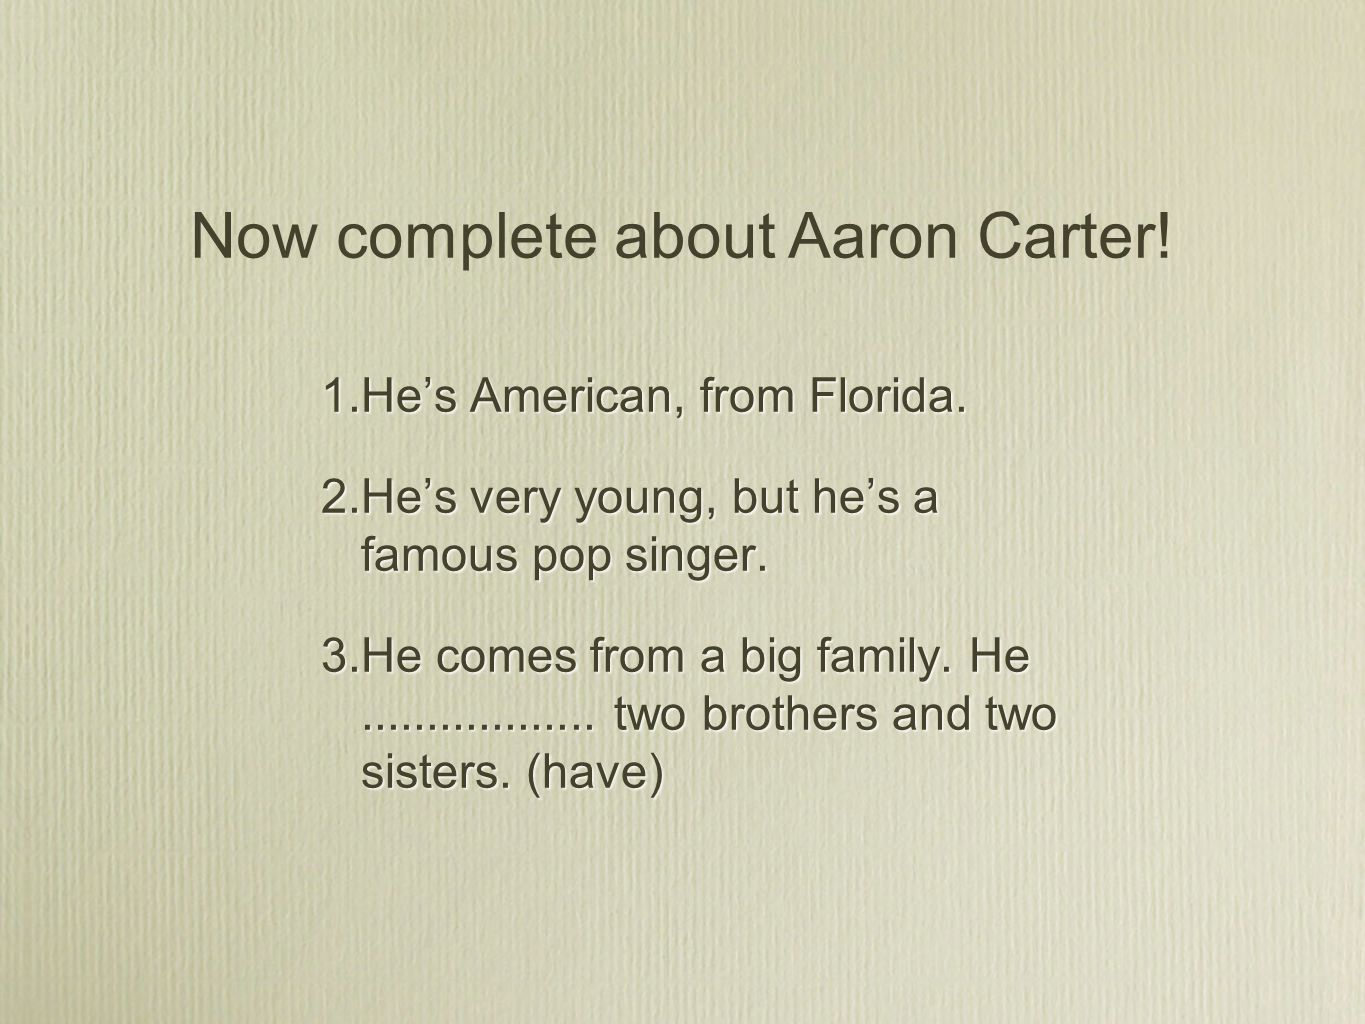 Now complete about Aaron Carter!